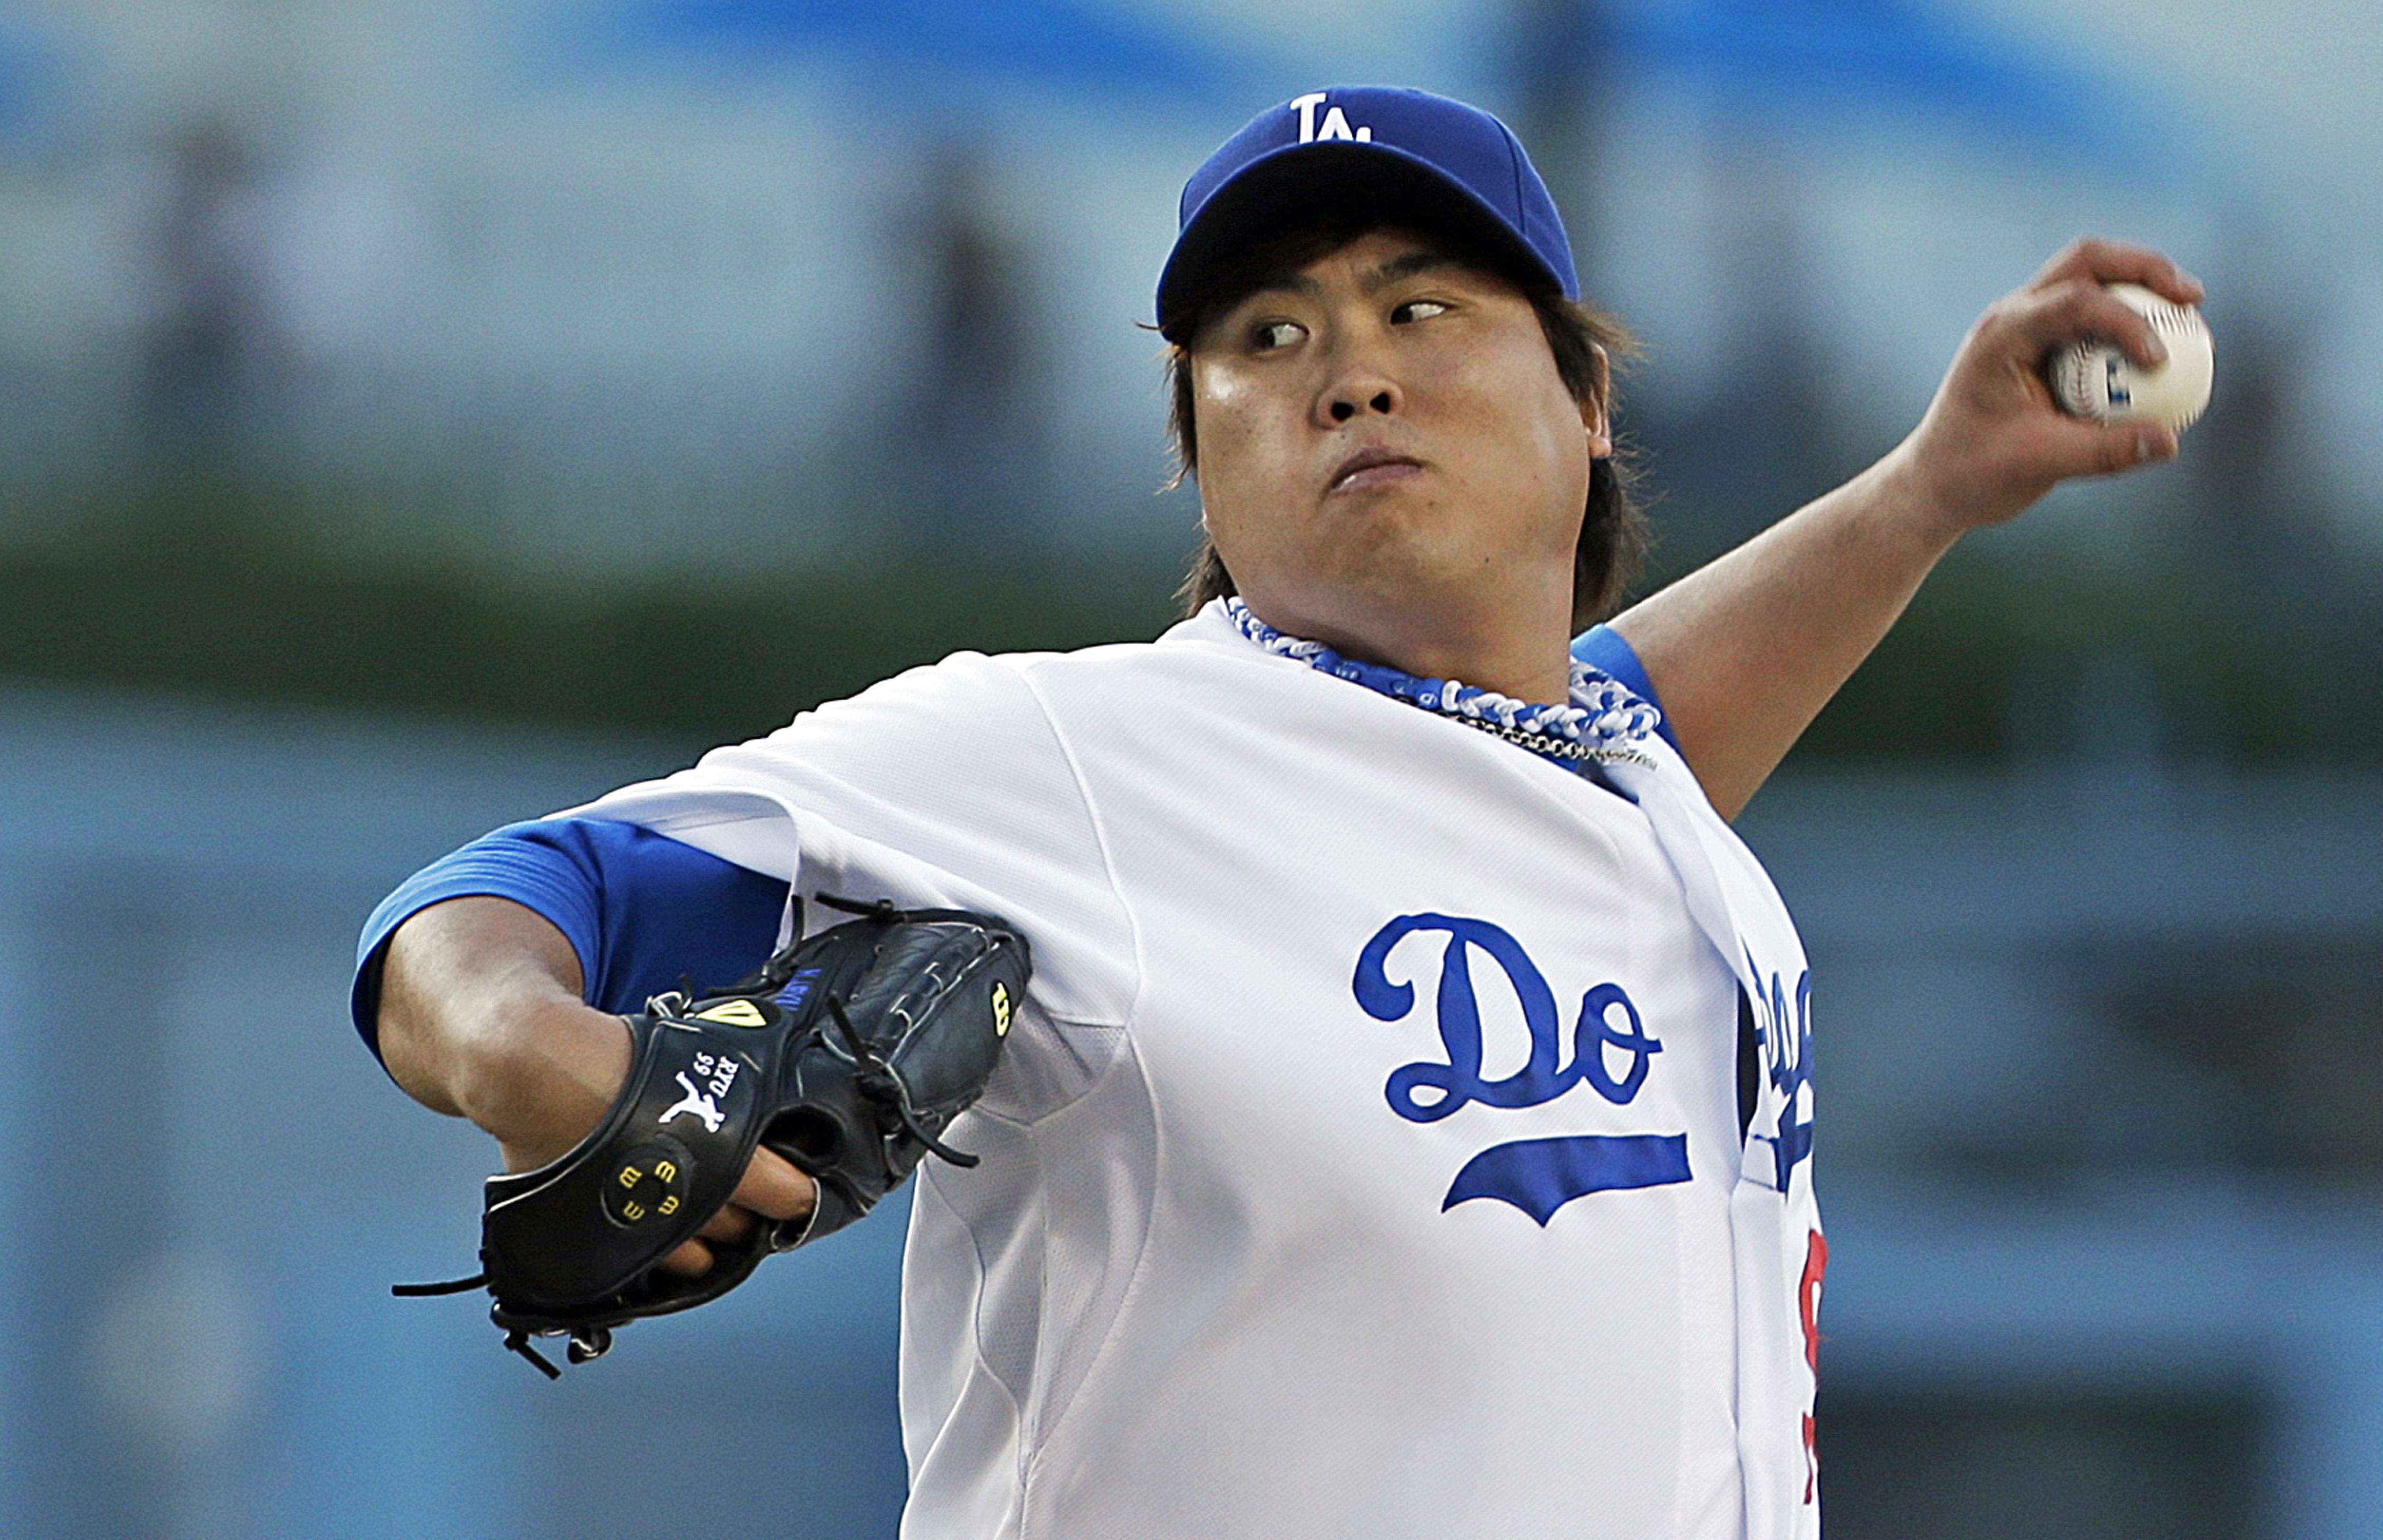 Los Angeles Dodgers starter Hyun-Jin Ryu.